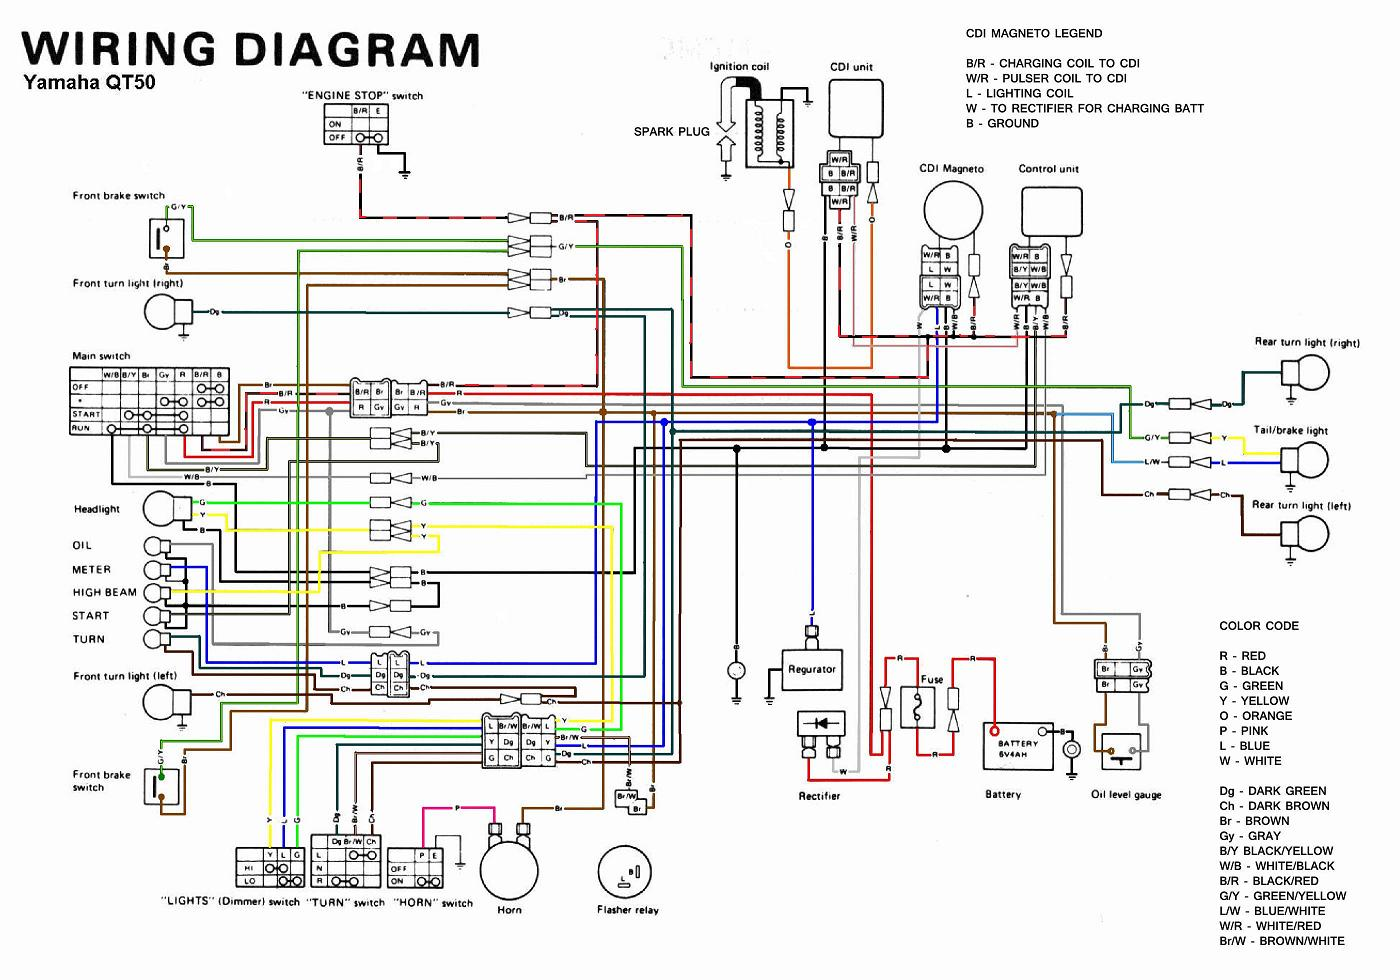 suzuki savage wire harness. suzuki. free wiring diagrams, Wiring diagram